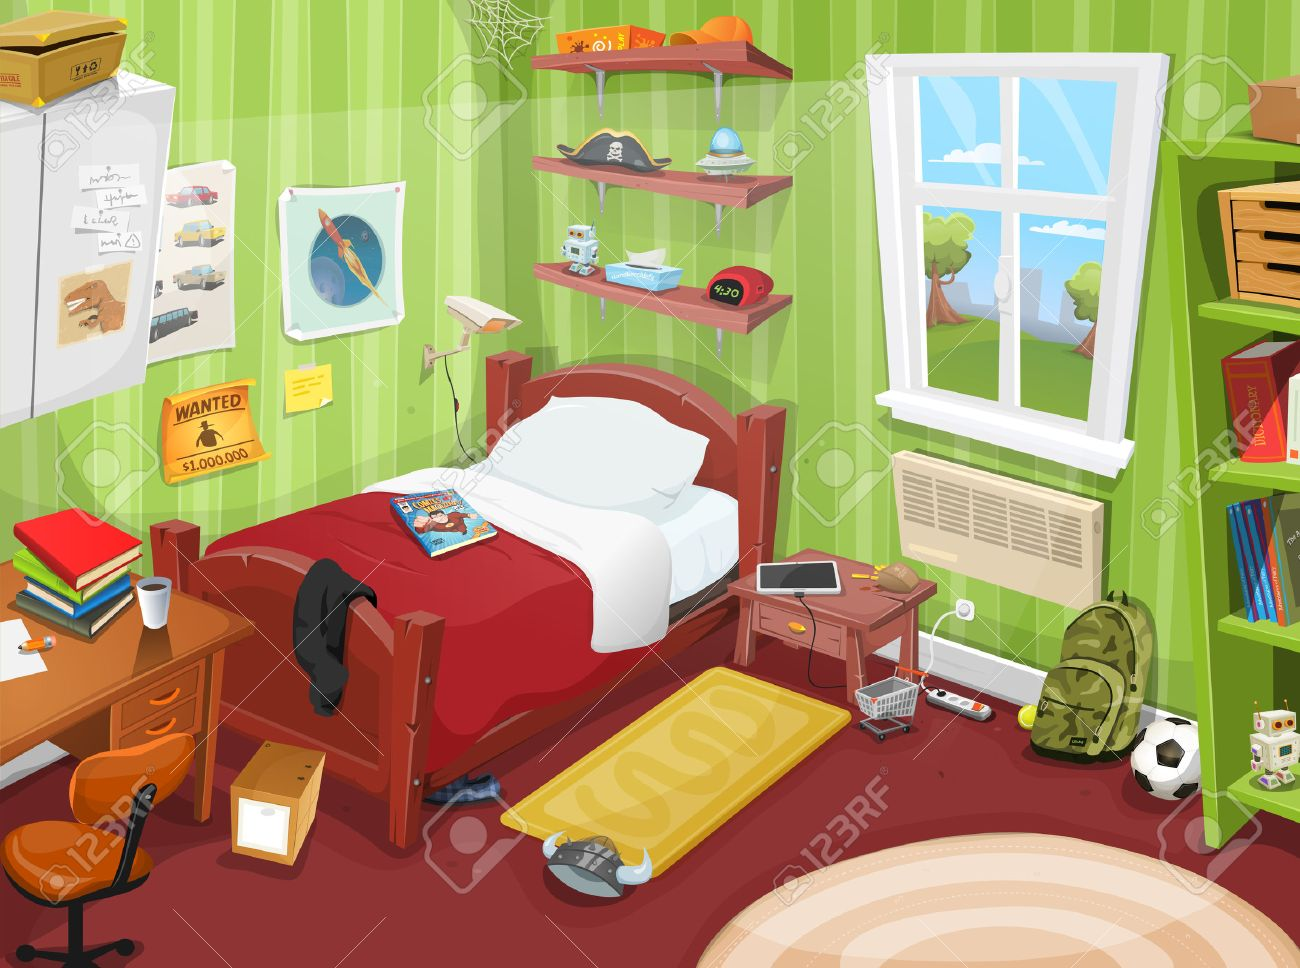 1,456 Messy Room Stock Vector Illustration And Royalty Free.